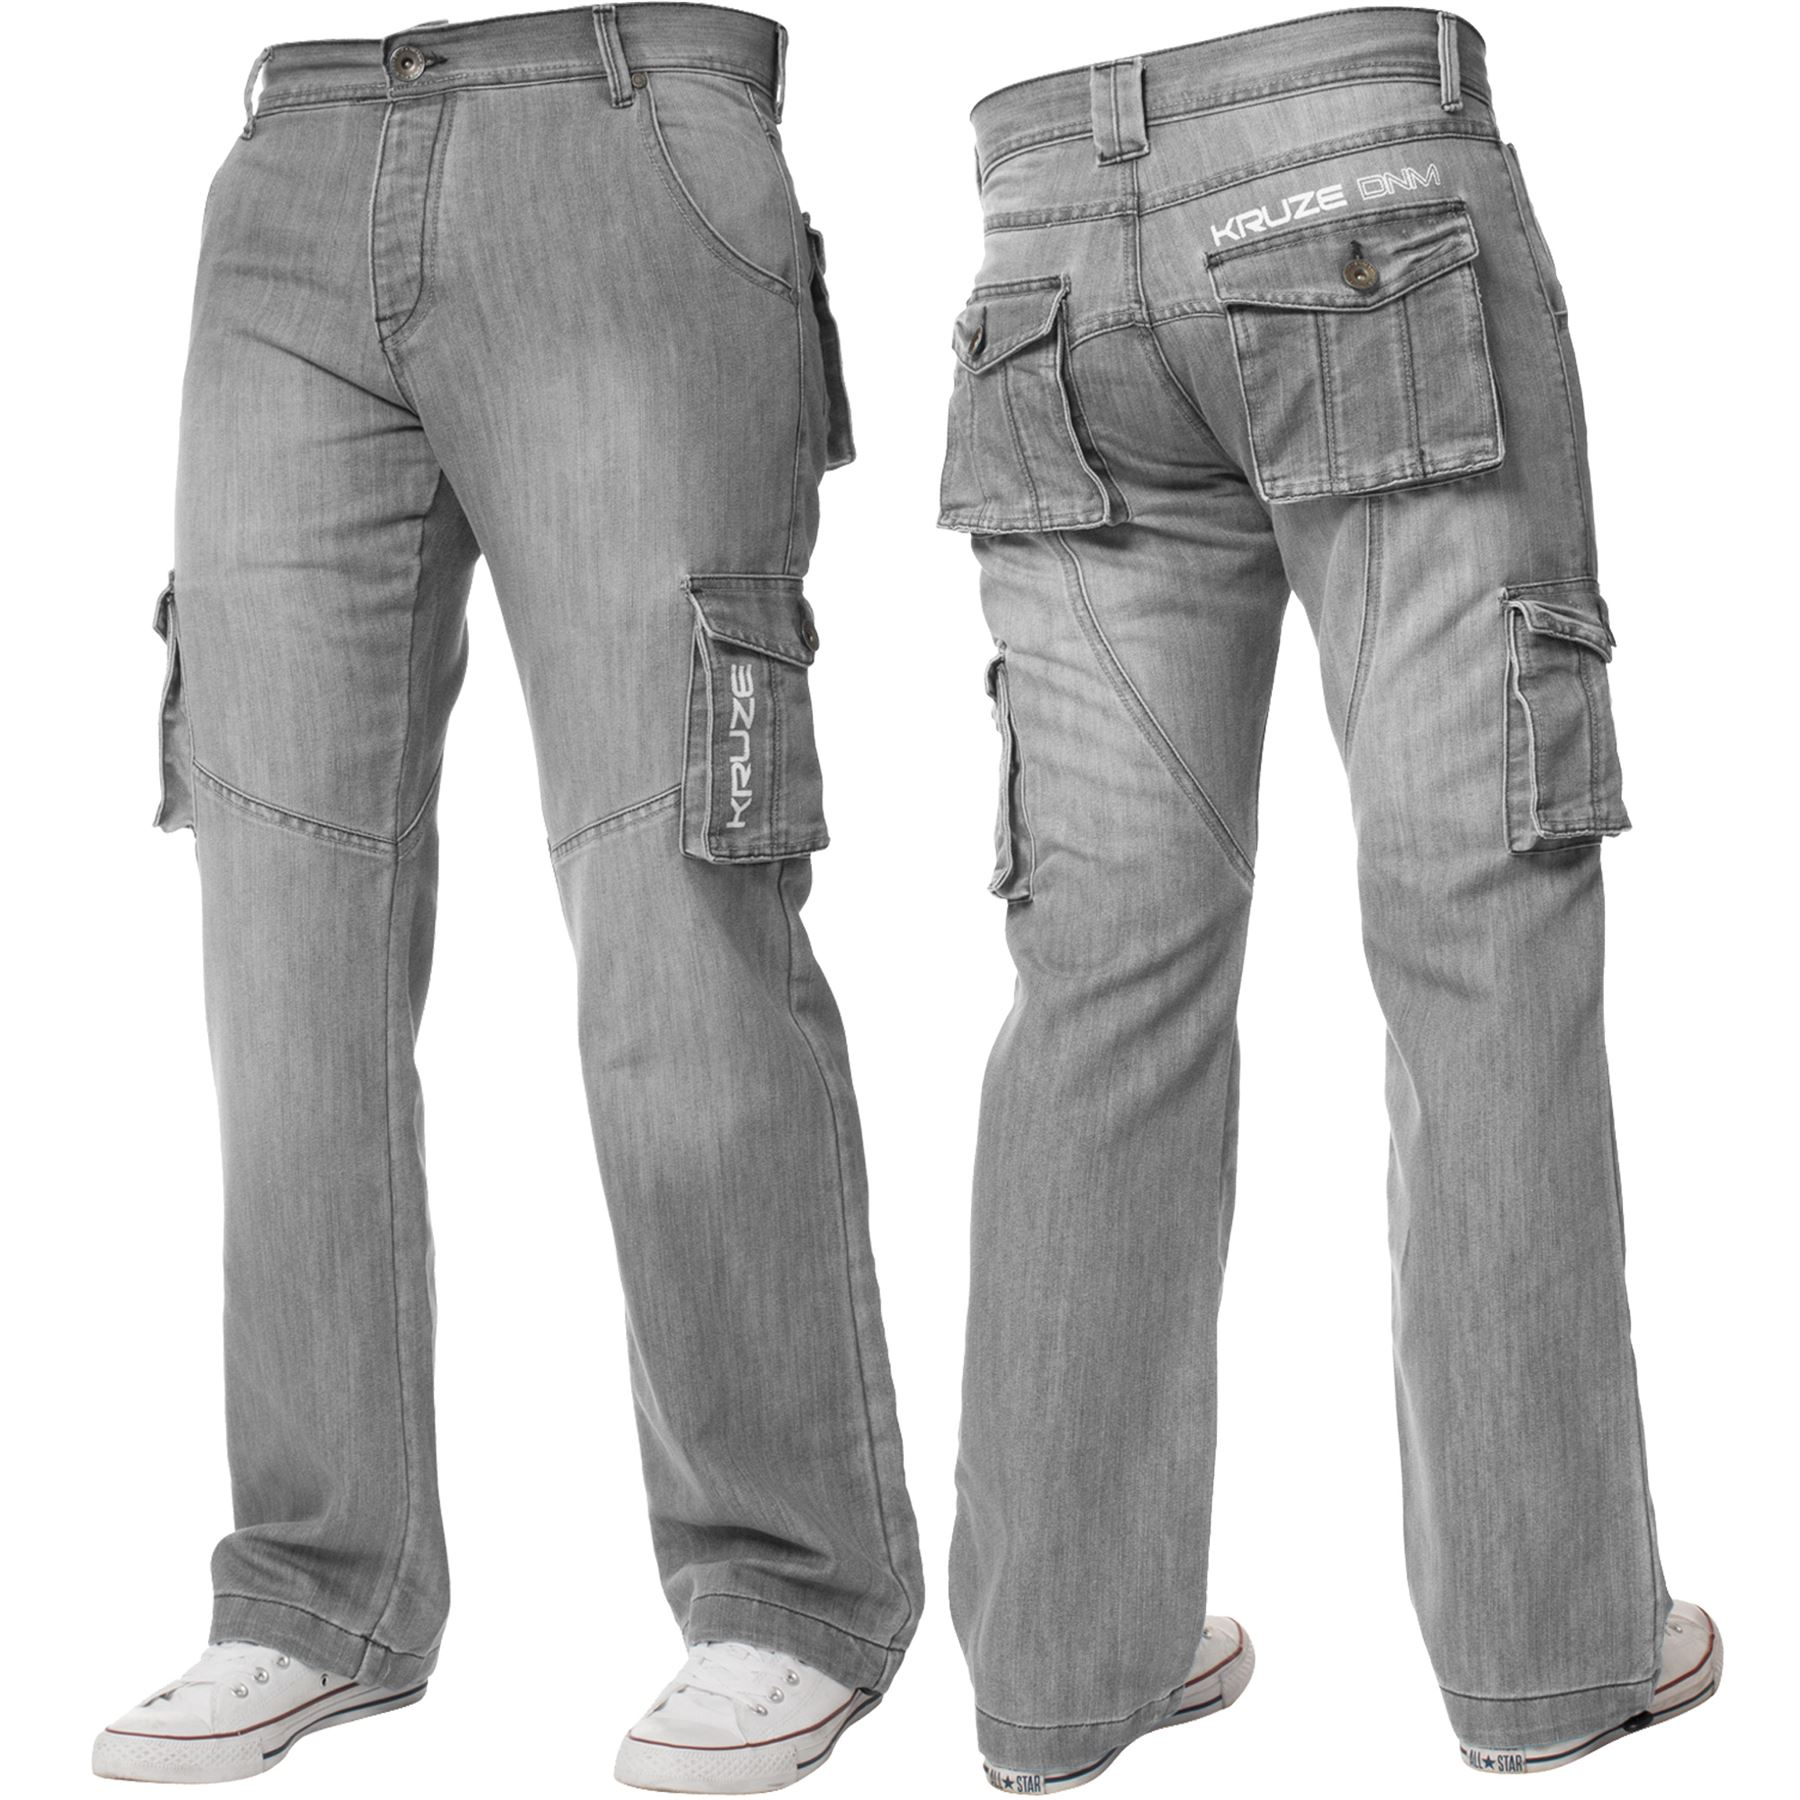 Kruze-Mens-Cargo-Combat-Jeans-Casual-Work-Denim-Pants-Big-Tall-All-Waist-Sizes thumbnail 35